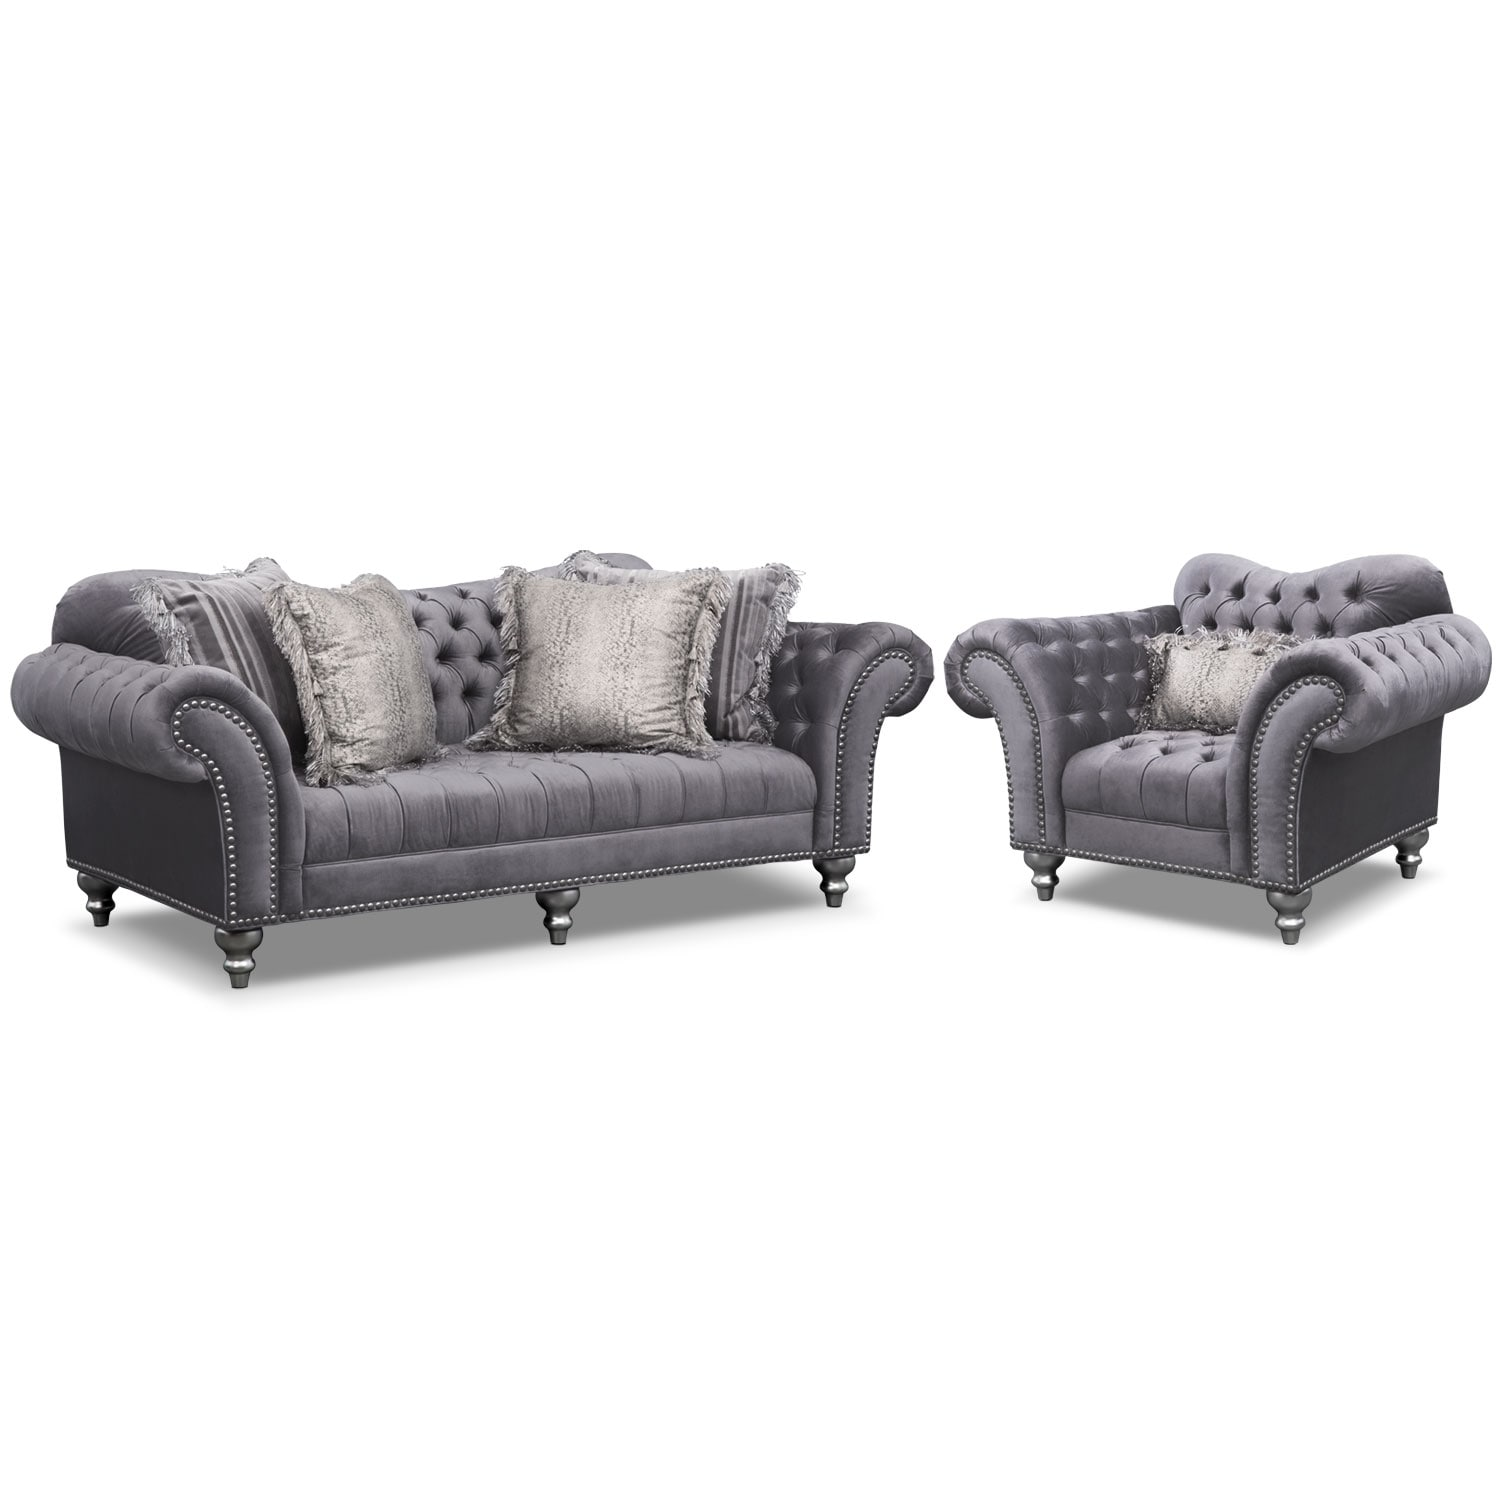 Living Room Furniture   Brittney Sofa And Chair Set   Gray